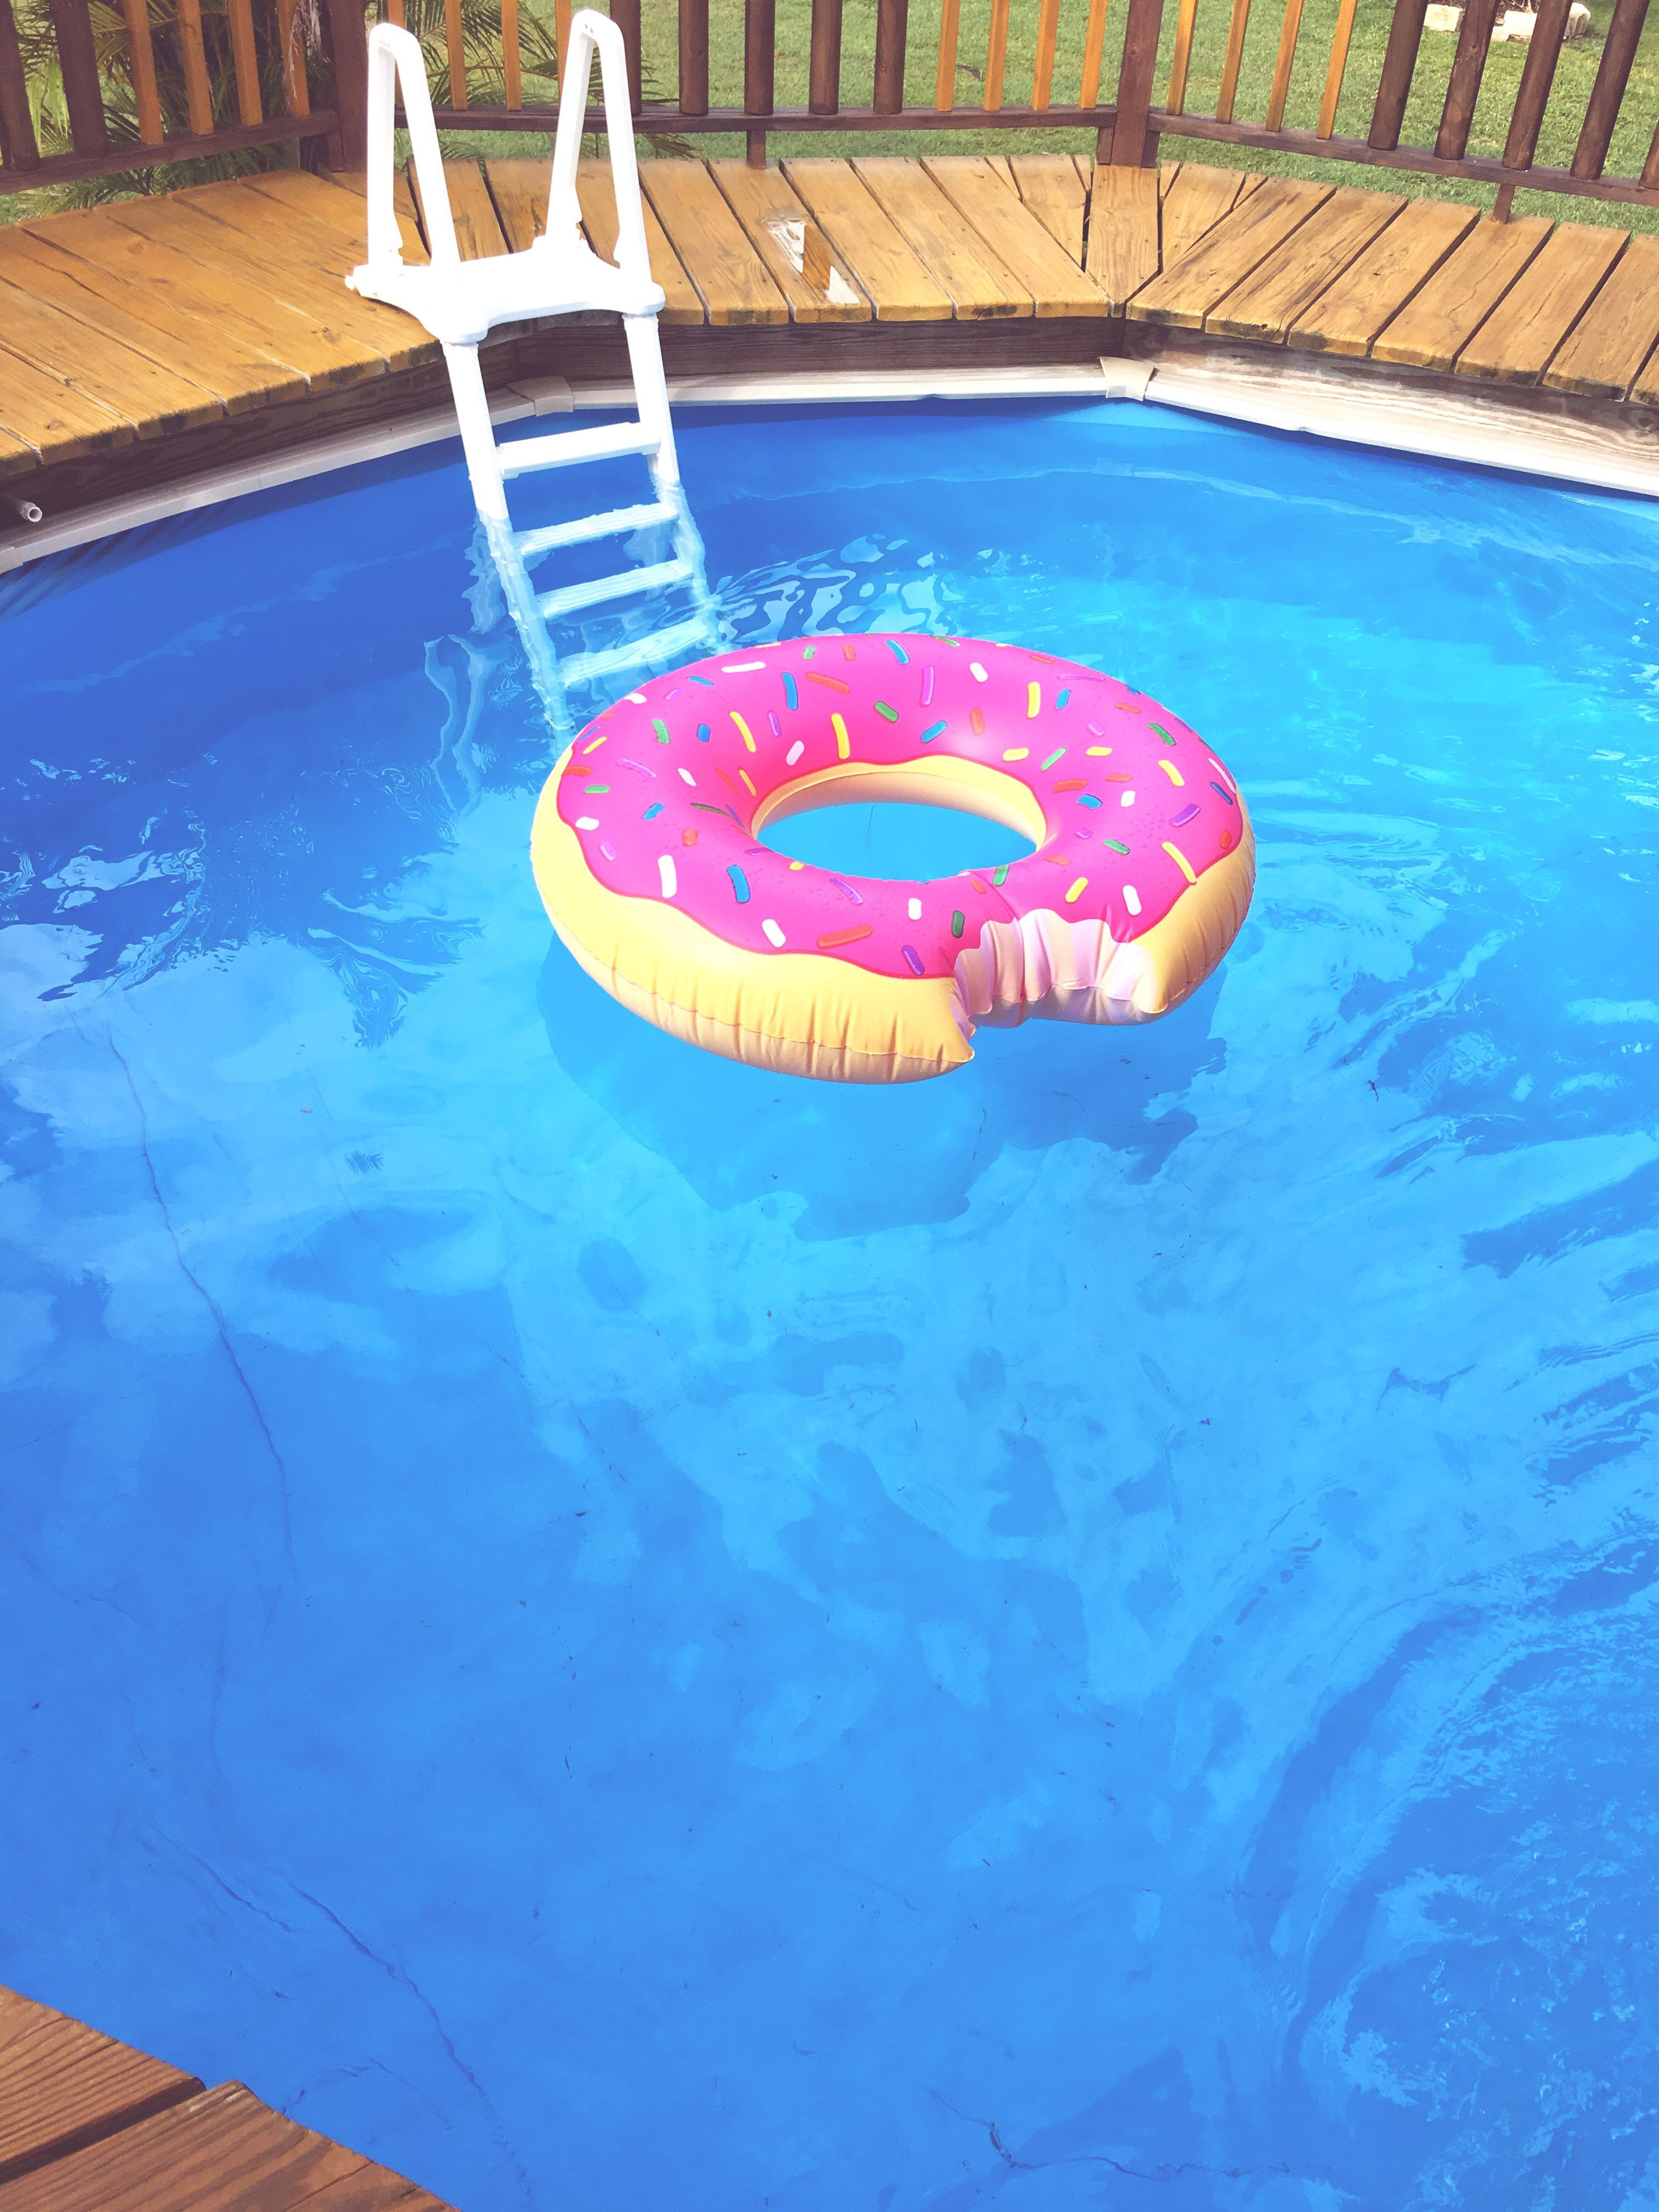 water, swimming pool, inflatable, inflatable ring, floating on water, pool raft, blue, waterfront, day, high angle view, sunlight, no people, outdoors, vacations, swimming, nature, close-up